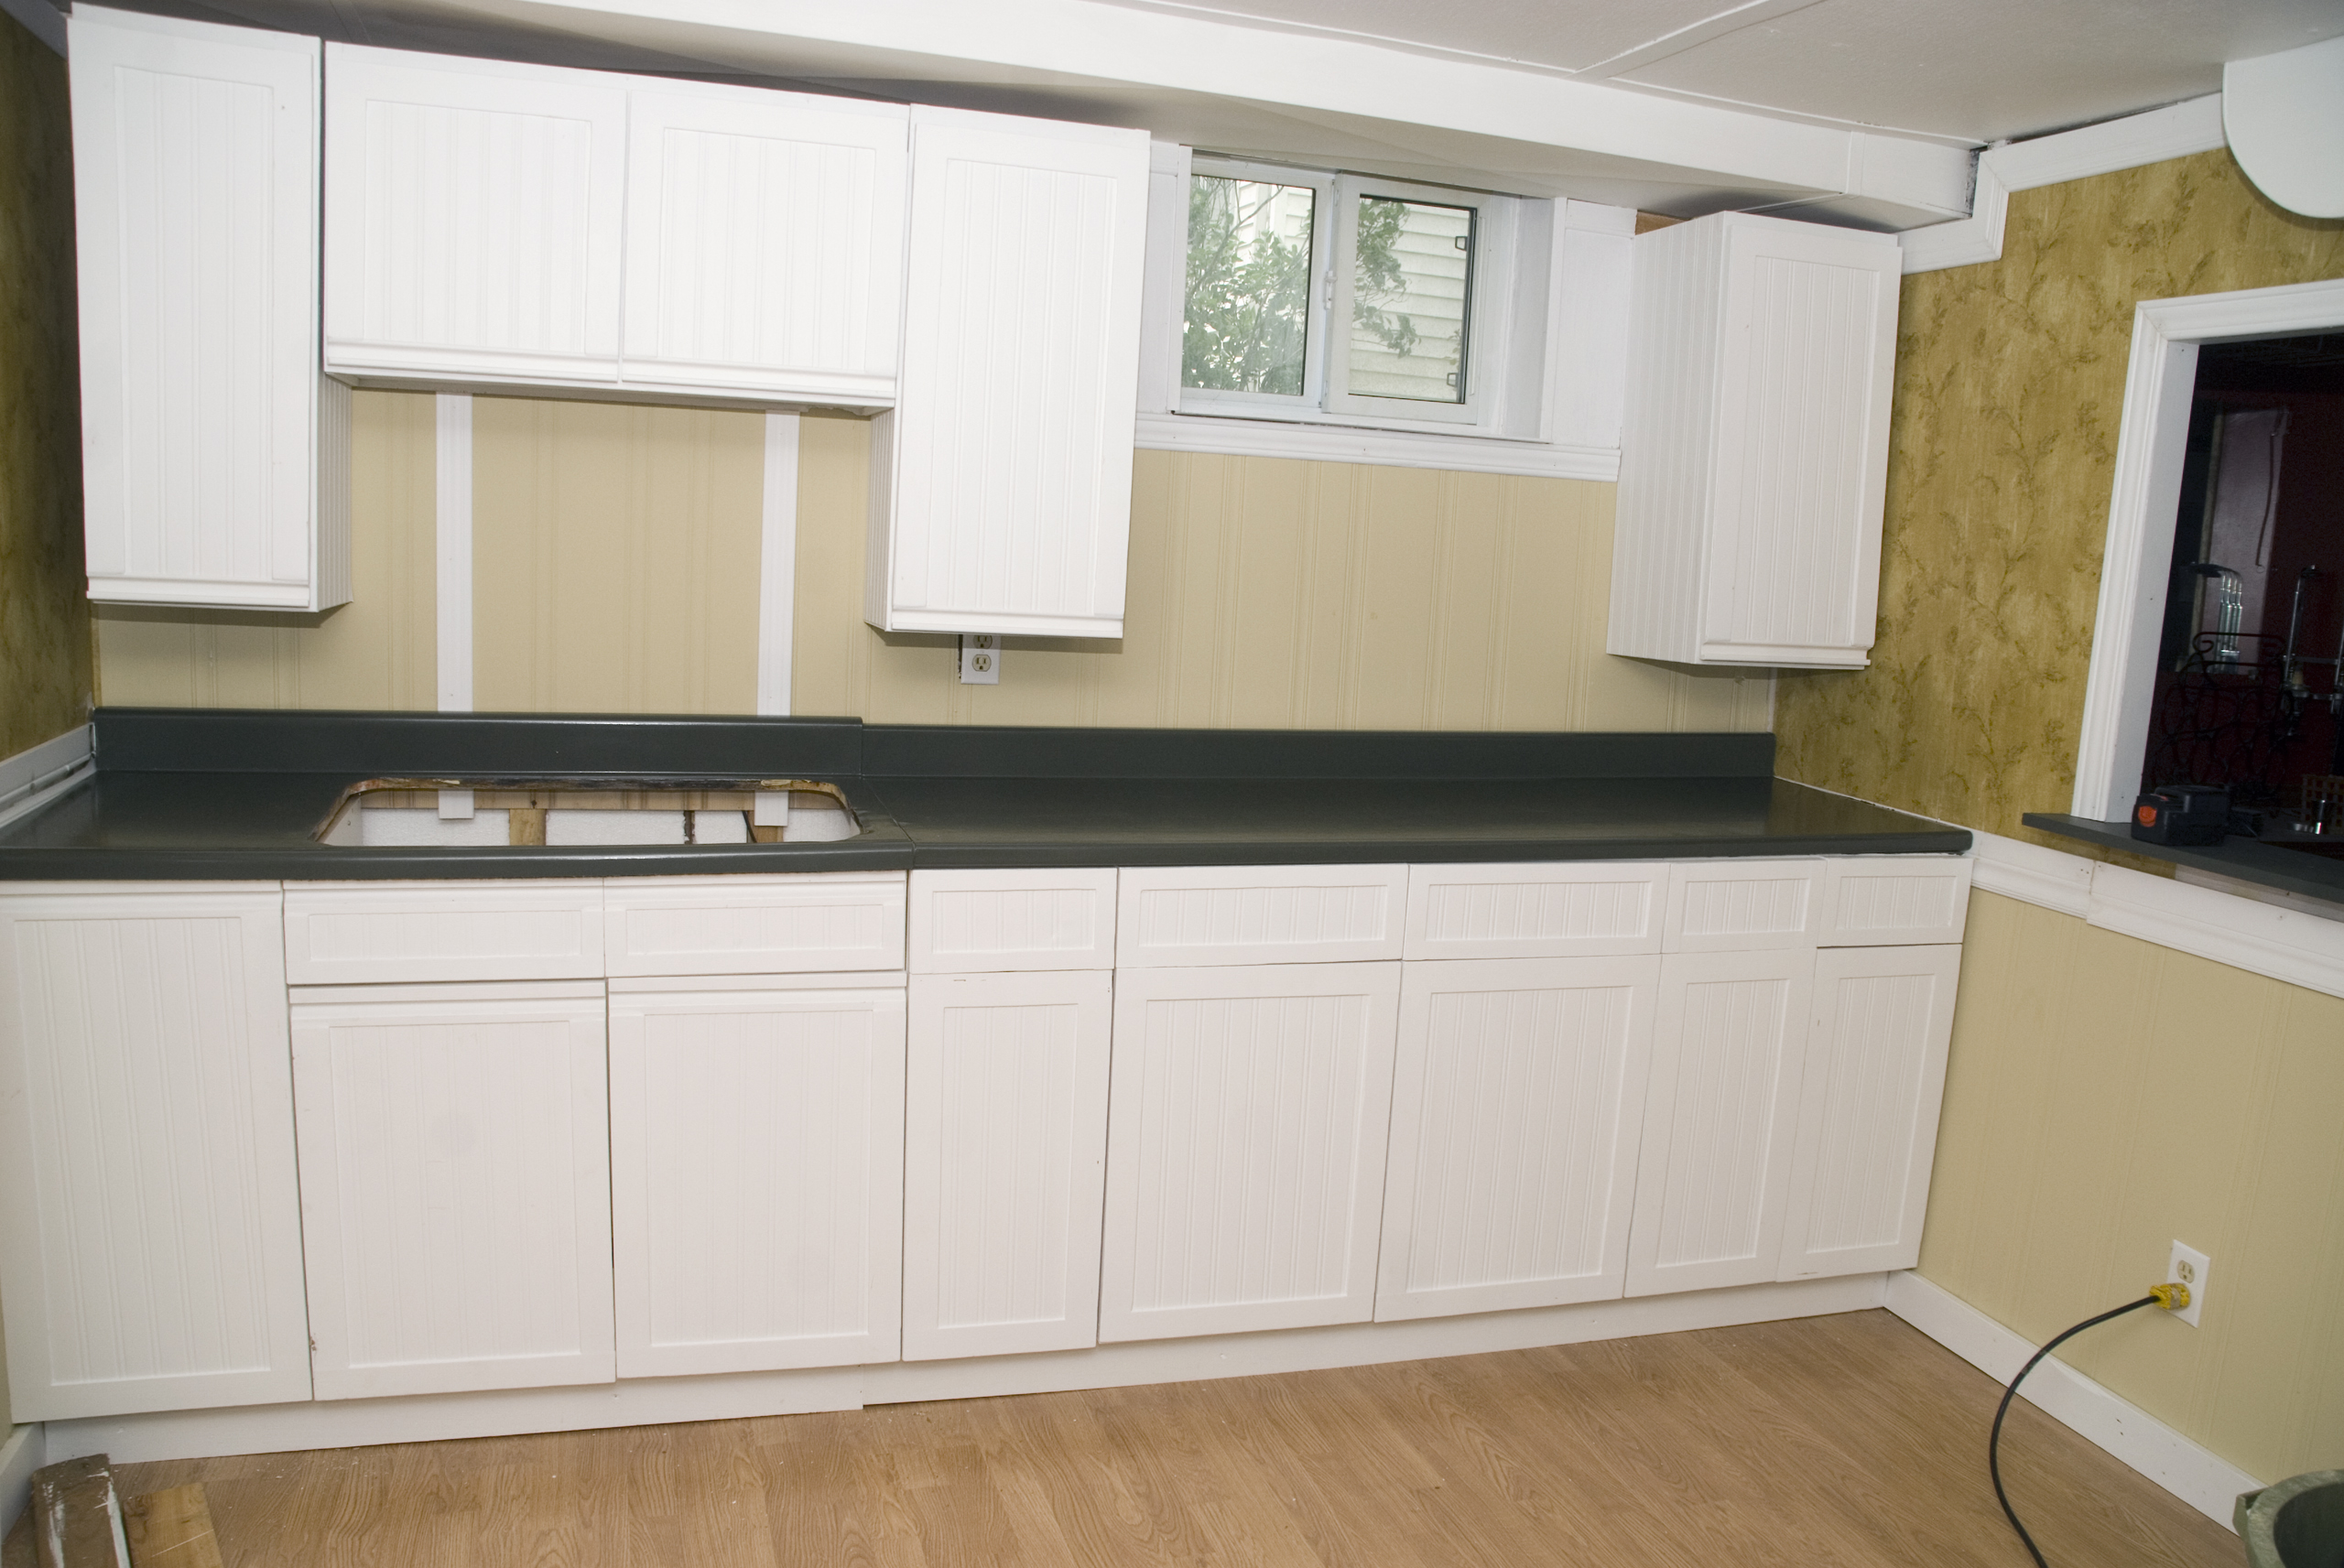 Maple Melamine Kitchen Cabinets Vs Wood How To Refinish Melamine Kitchen Cabinets Cabinets Matttroy